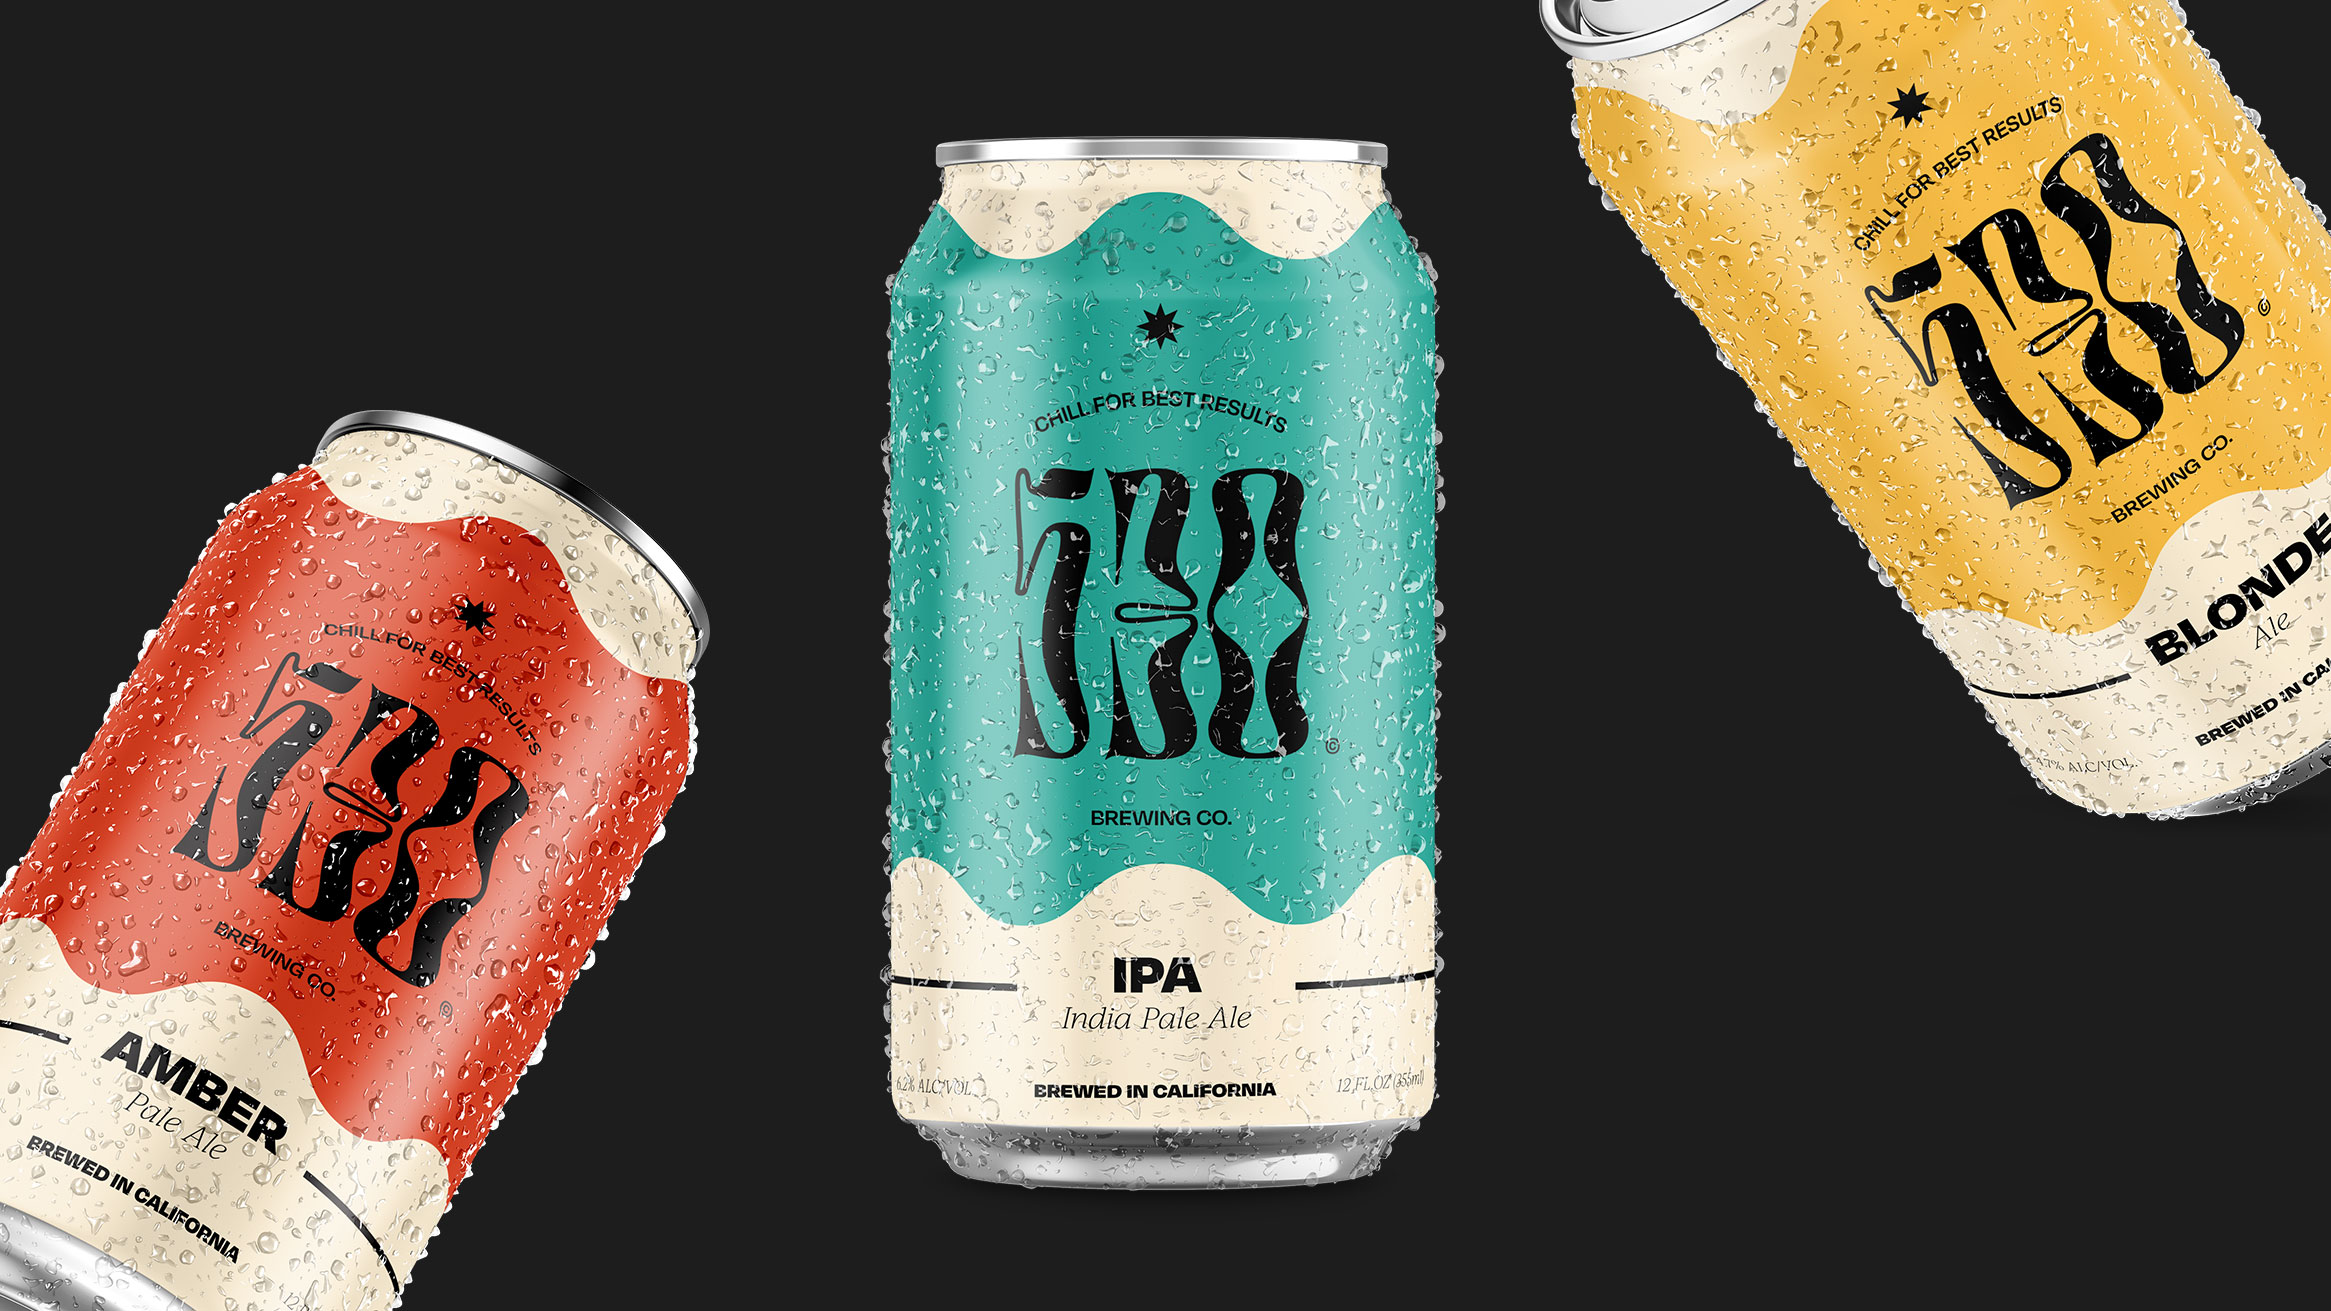 Laura Ángel Creates 530 Craft Beer Brand and Packaging Design